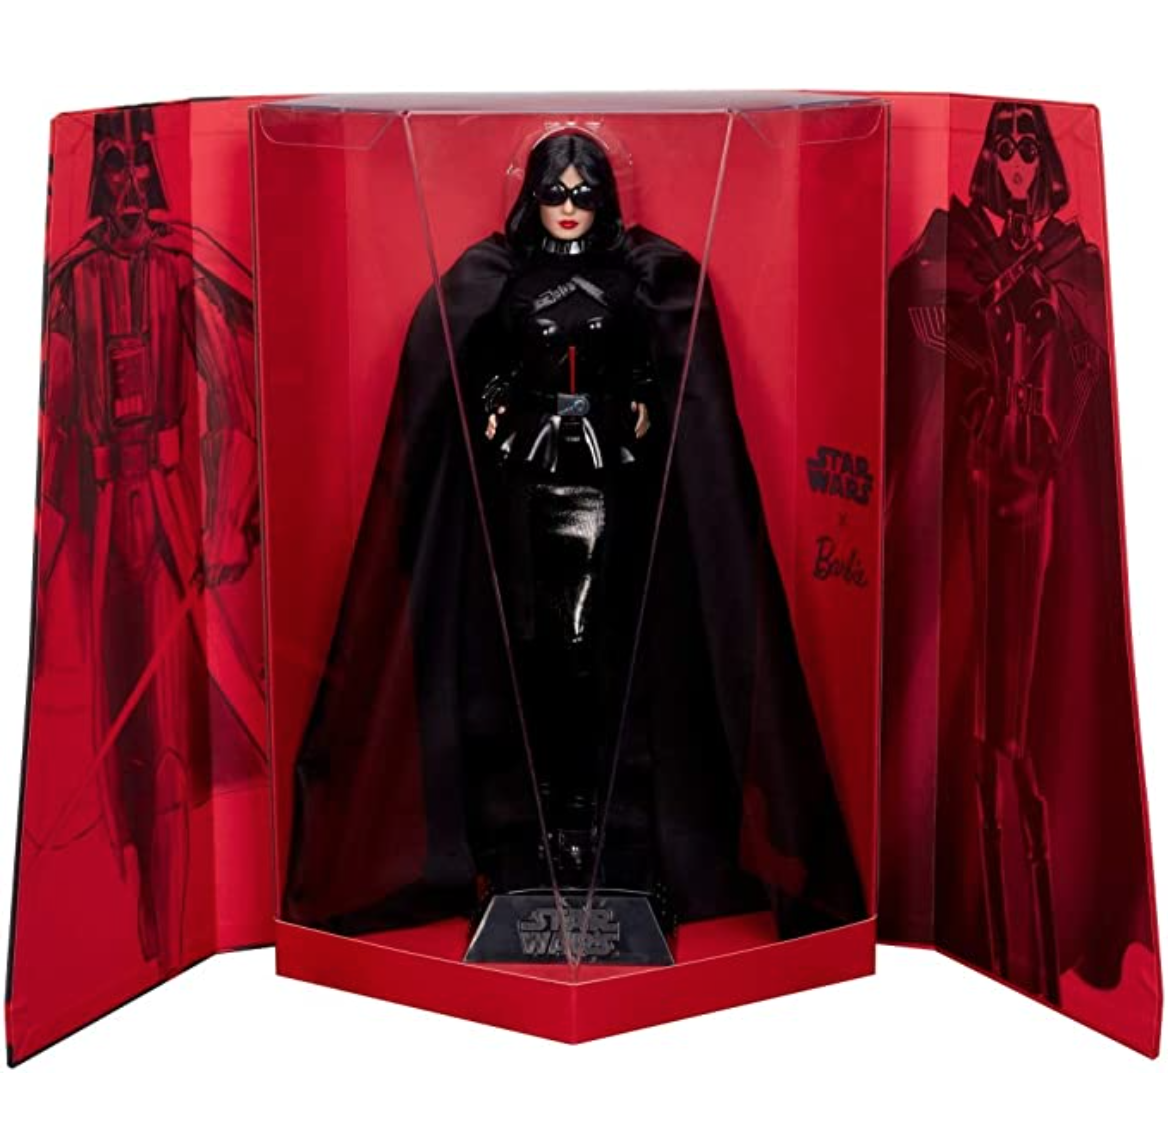 """If You Think You've Seen Eye-Catching 'Star Wars' Merchandise Before, These """"High-Fashion"""" Barbies Might Make You Think Again!"""